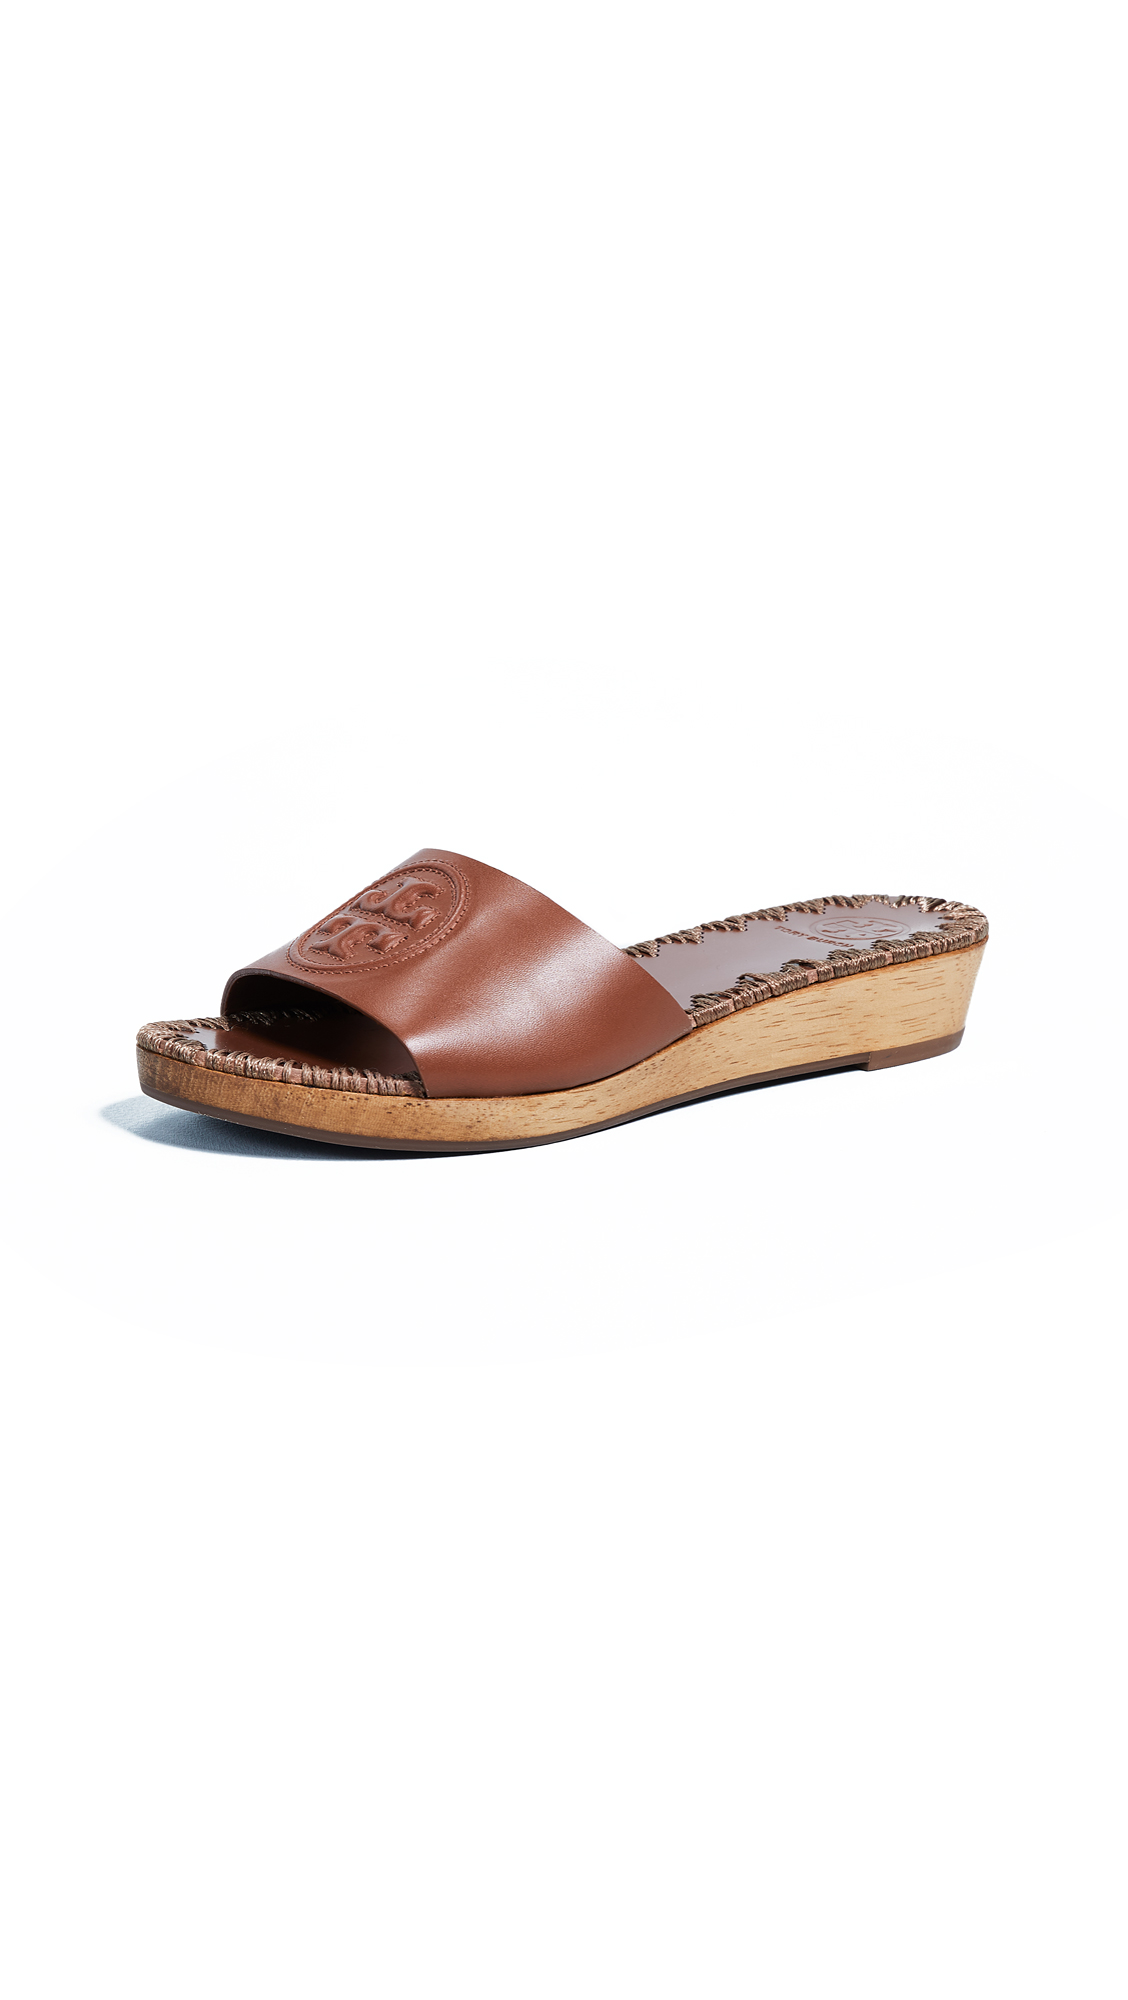 Tory Burch Patty 35mm Wedge Slides - Perfect Cuoio